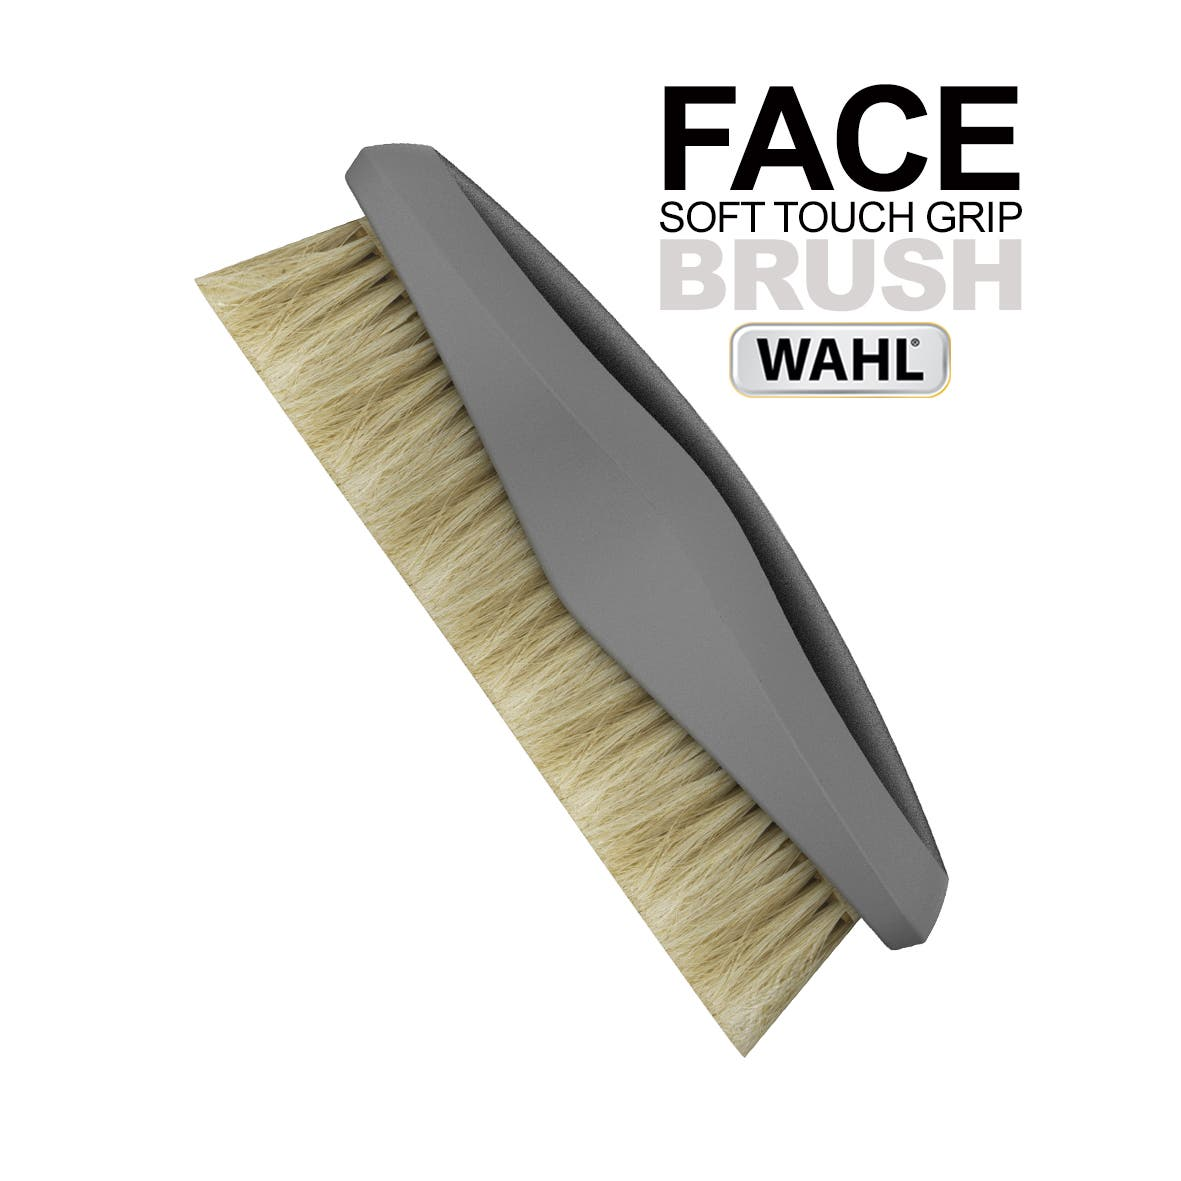 Wahl Face Brush Pet/Animal Brushes - Soft Touch Grip